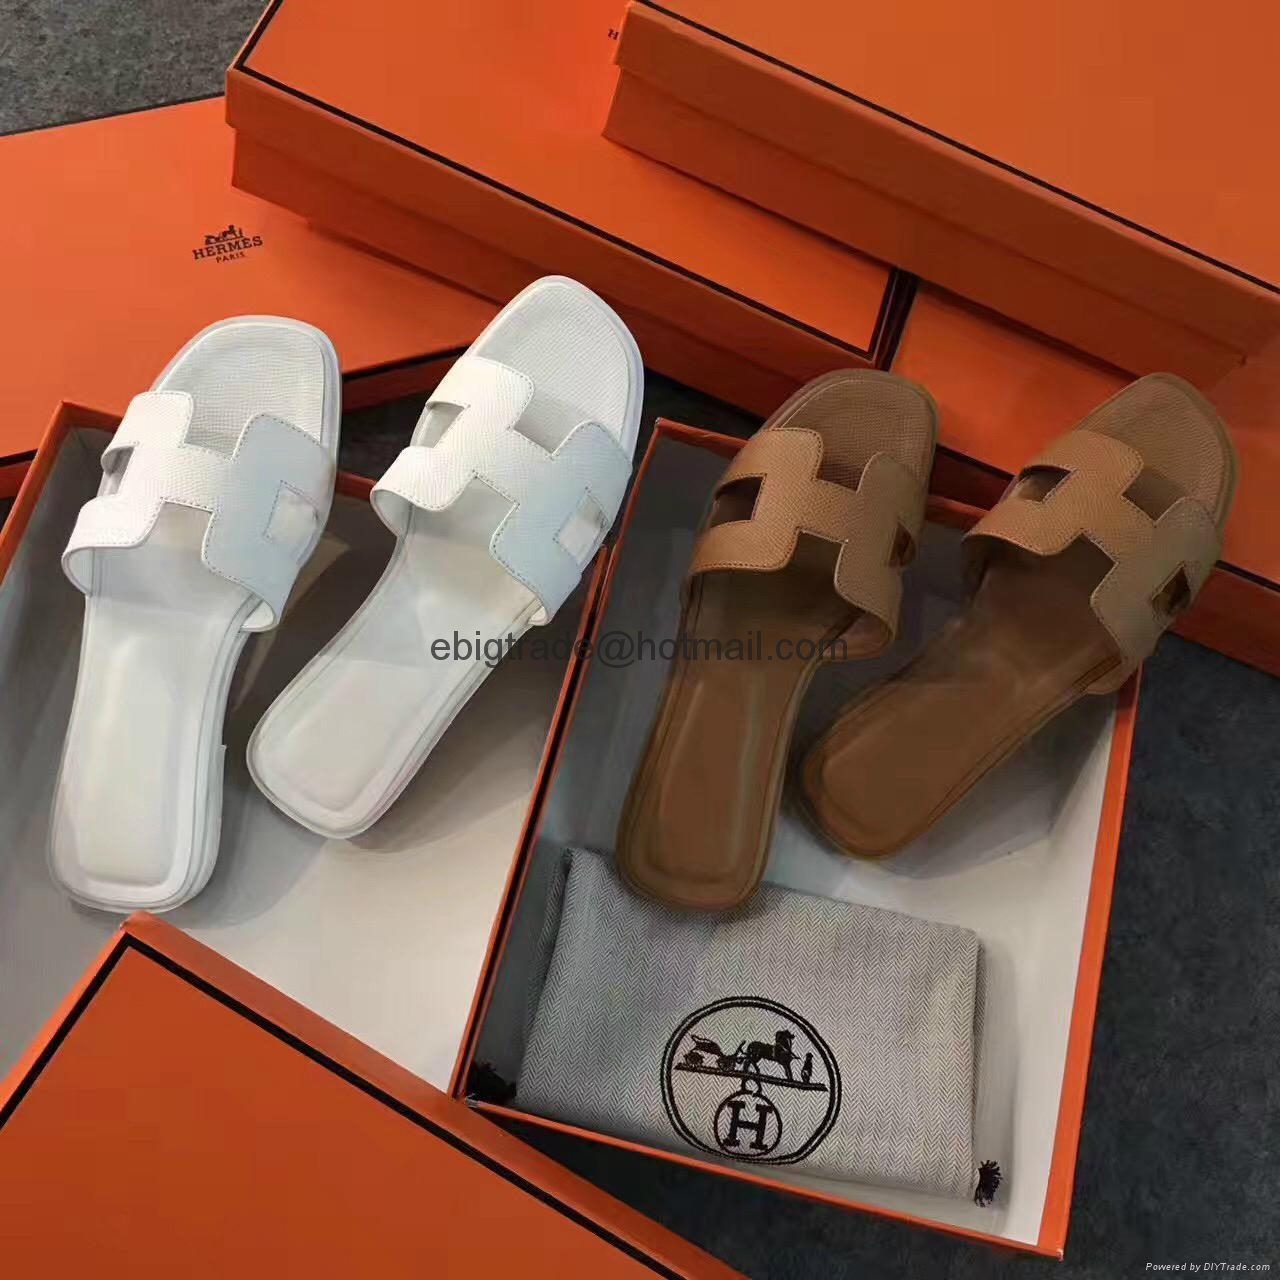 956e72fada0 Cheap Hermes Leather shoes Hermes sandals replica hermes shoes on ...